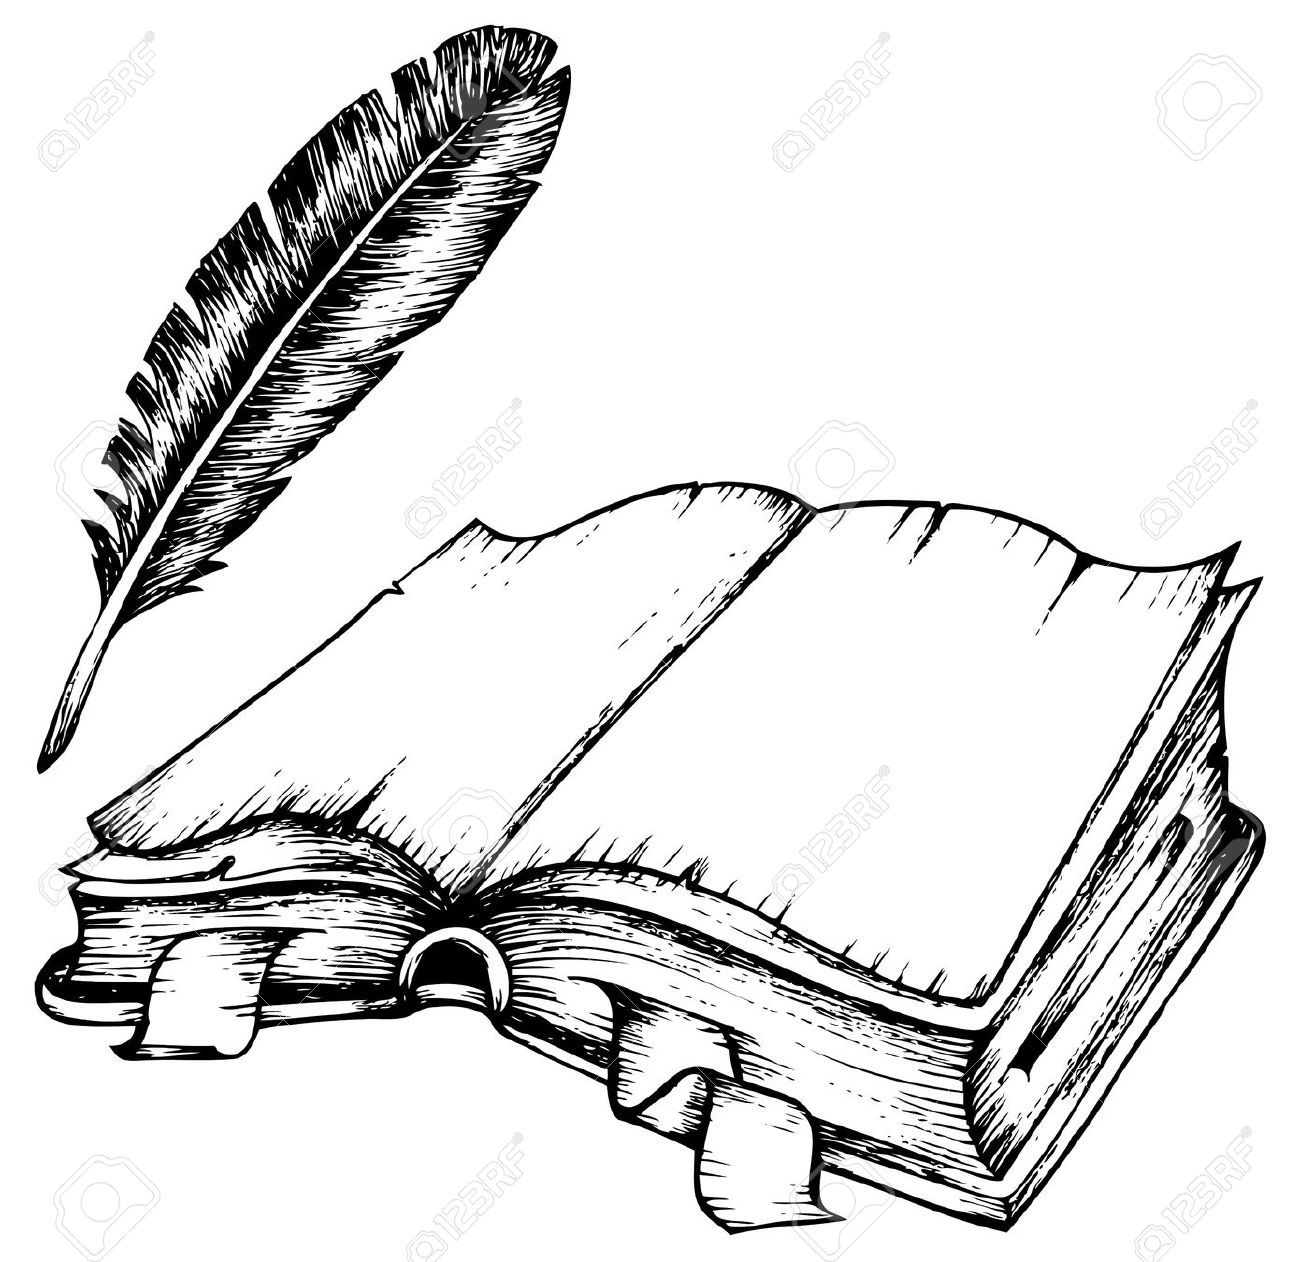 1300x1262 Quill Drawing Of Opened Book With Feather Illustration